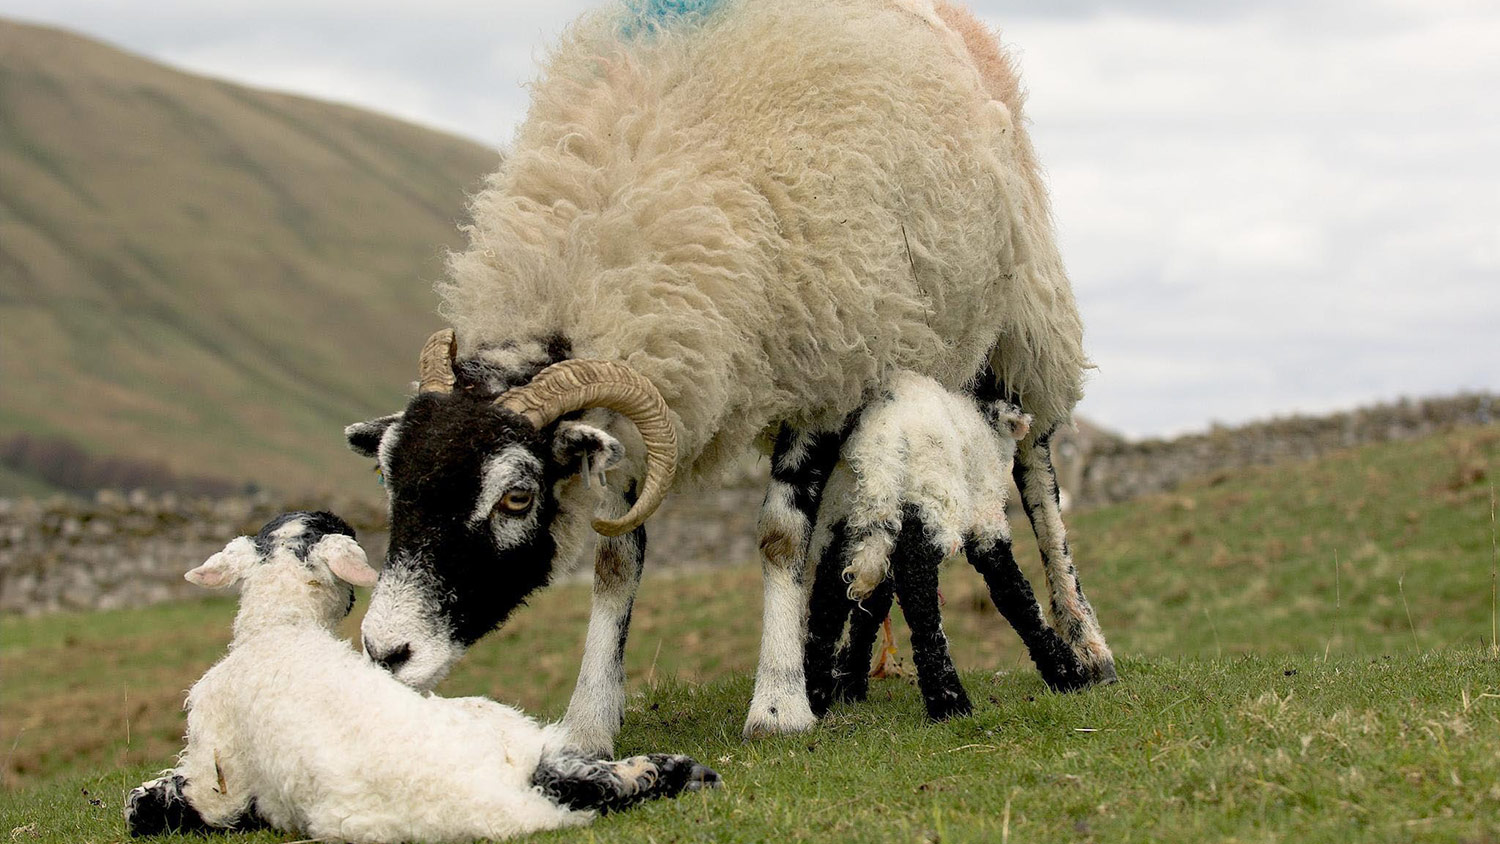 Vet's view: Preventing lamb hypothermia